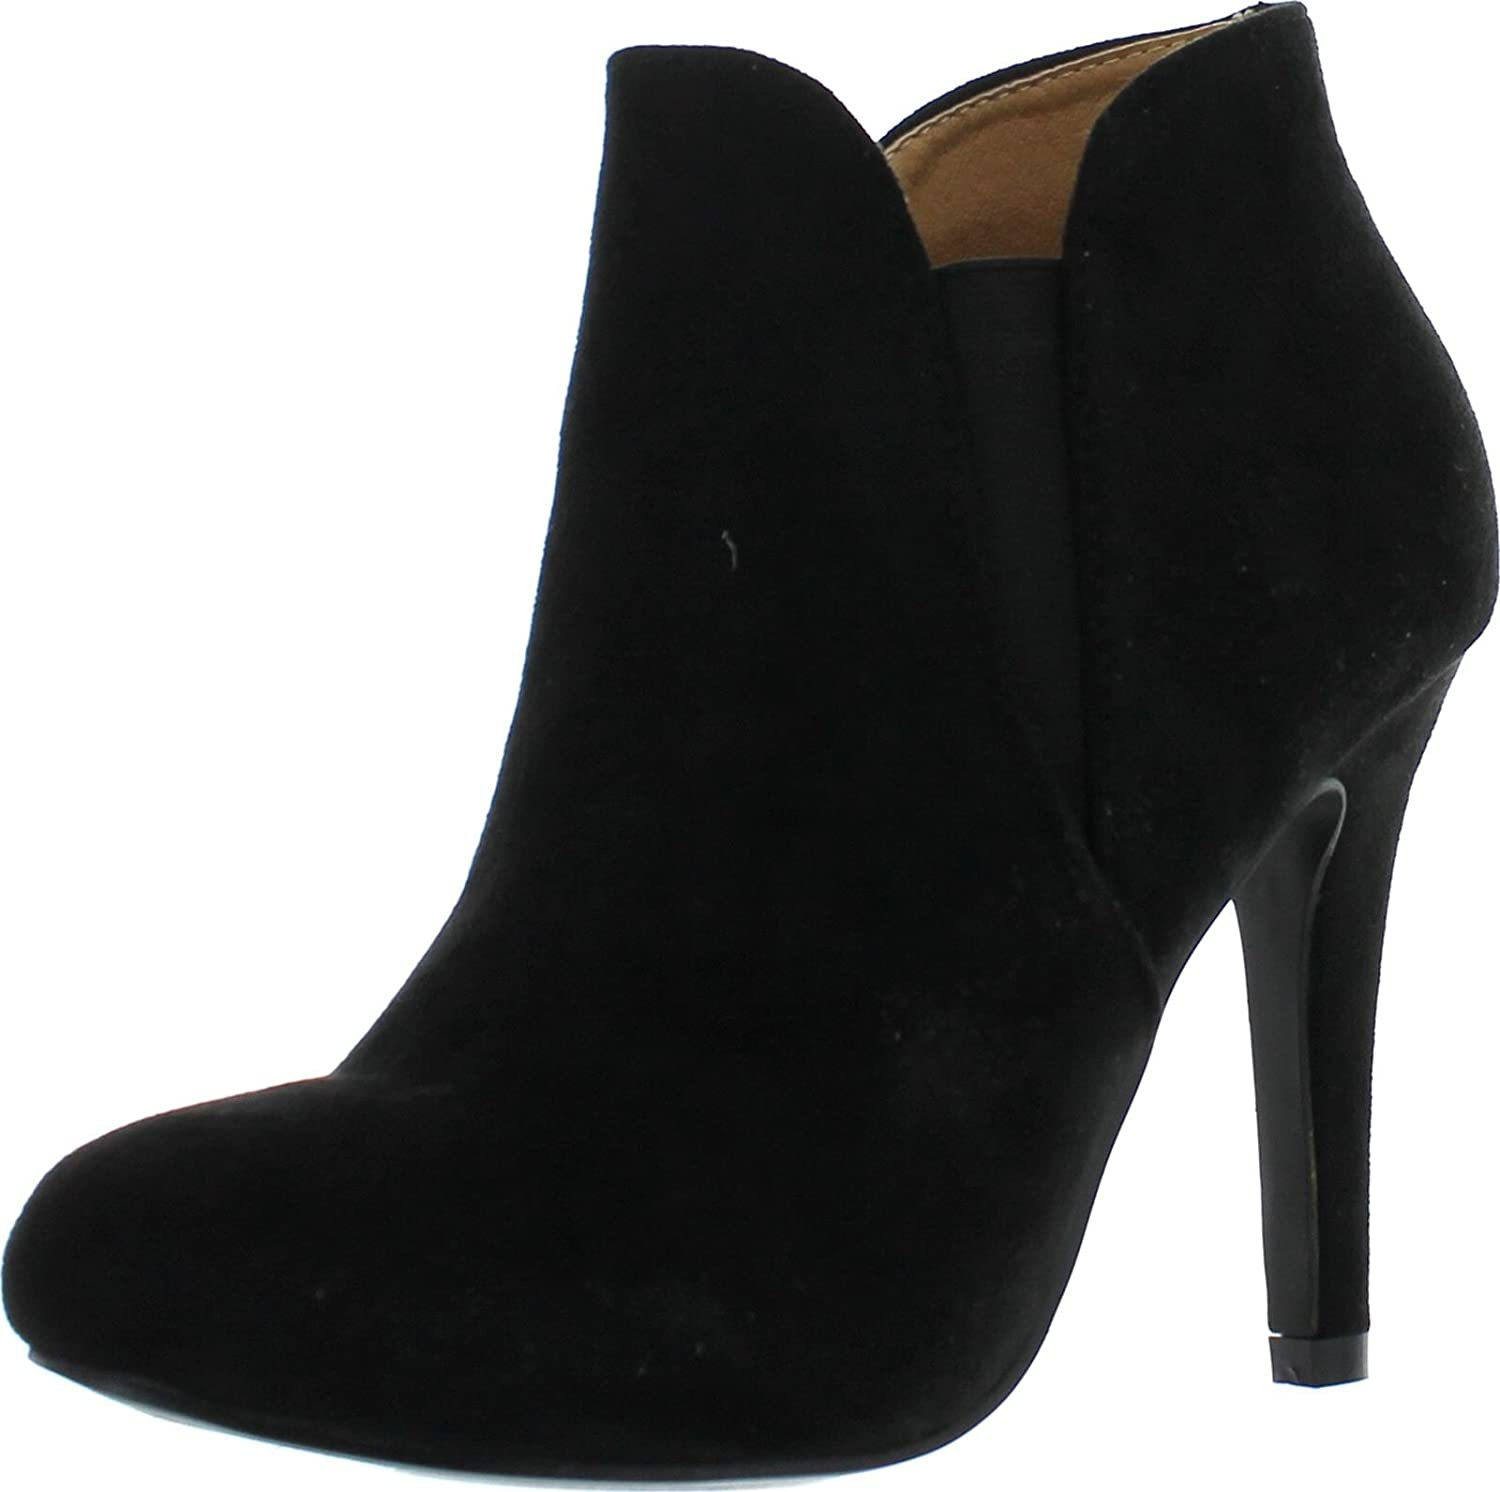 Bella Marie Kendall Women's Classic Chelsea style Round Toe Elastic Gore high heel Ankle Boots Booties